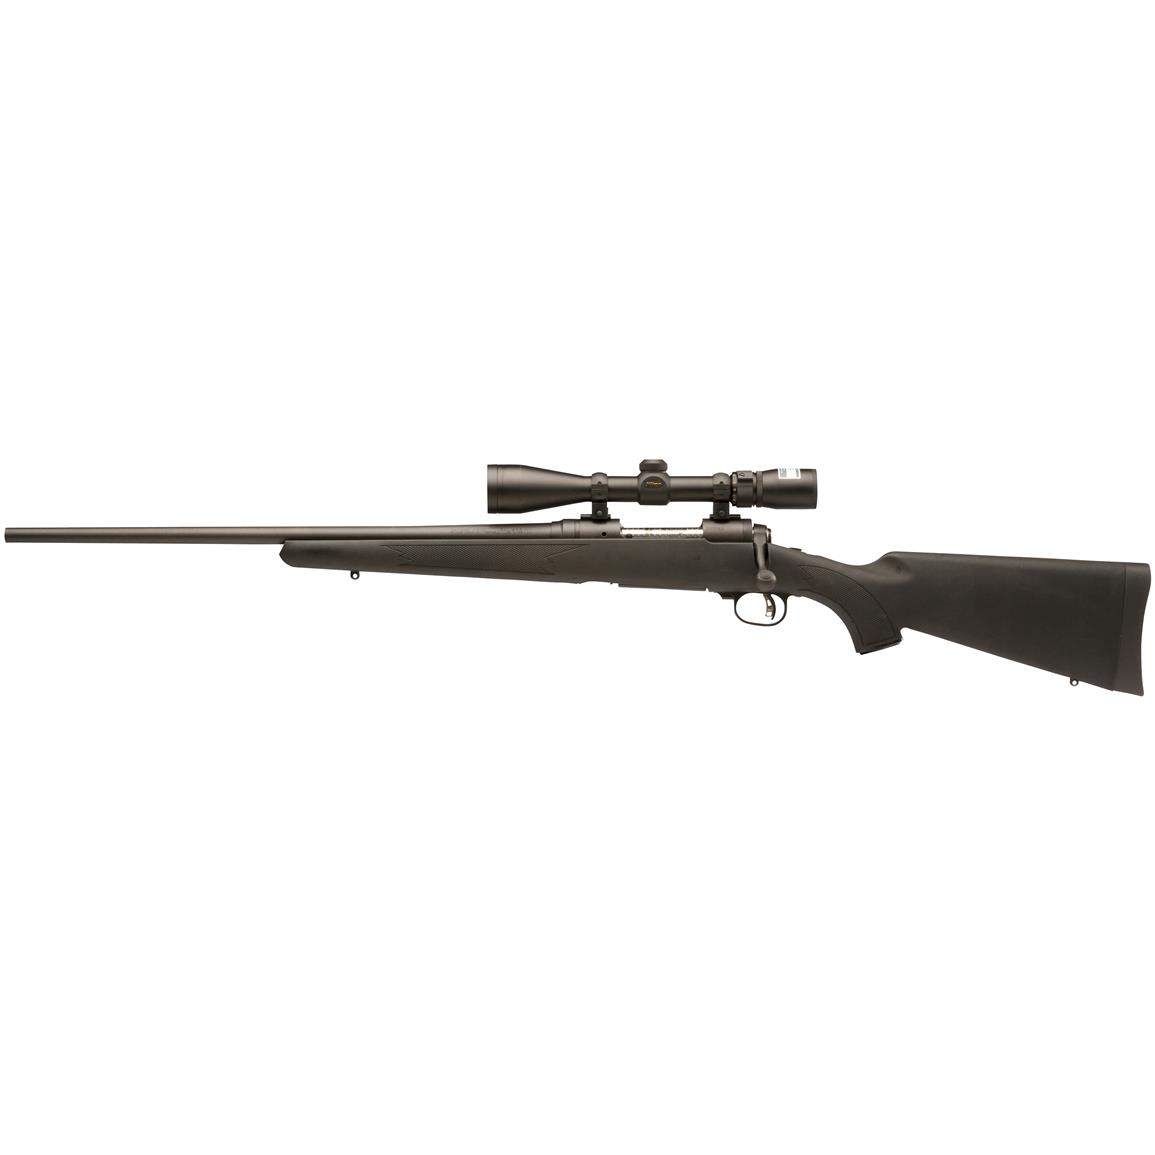 Left Handed, Savage 11 Trophy Hunter XP Package, Bolt Action, 6.5 Creedmoor, Centerfire, 19697, 011356196972, with Nikon BDC Scope